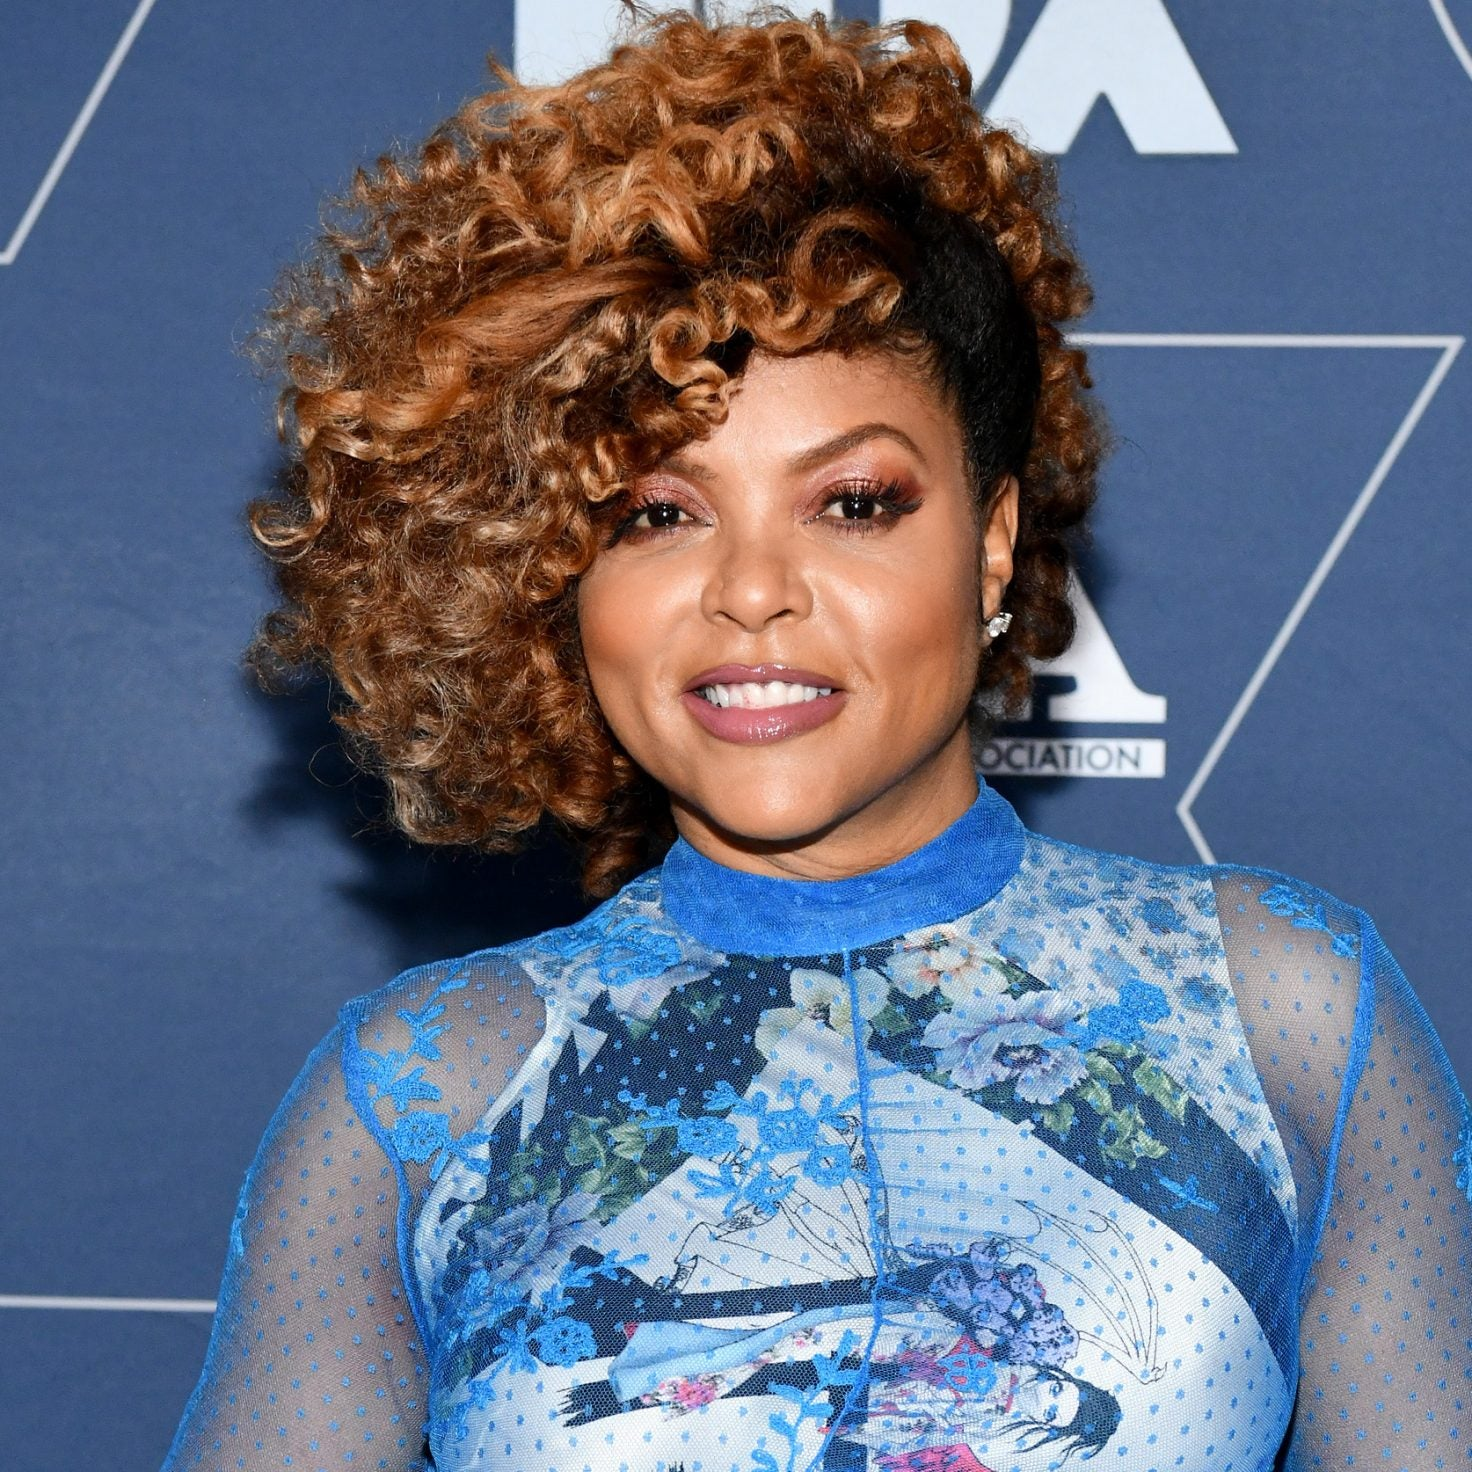 Exclusive: Taraji P. Henson Helps Those Affected By COVID-19 With Free Virtual Therapy